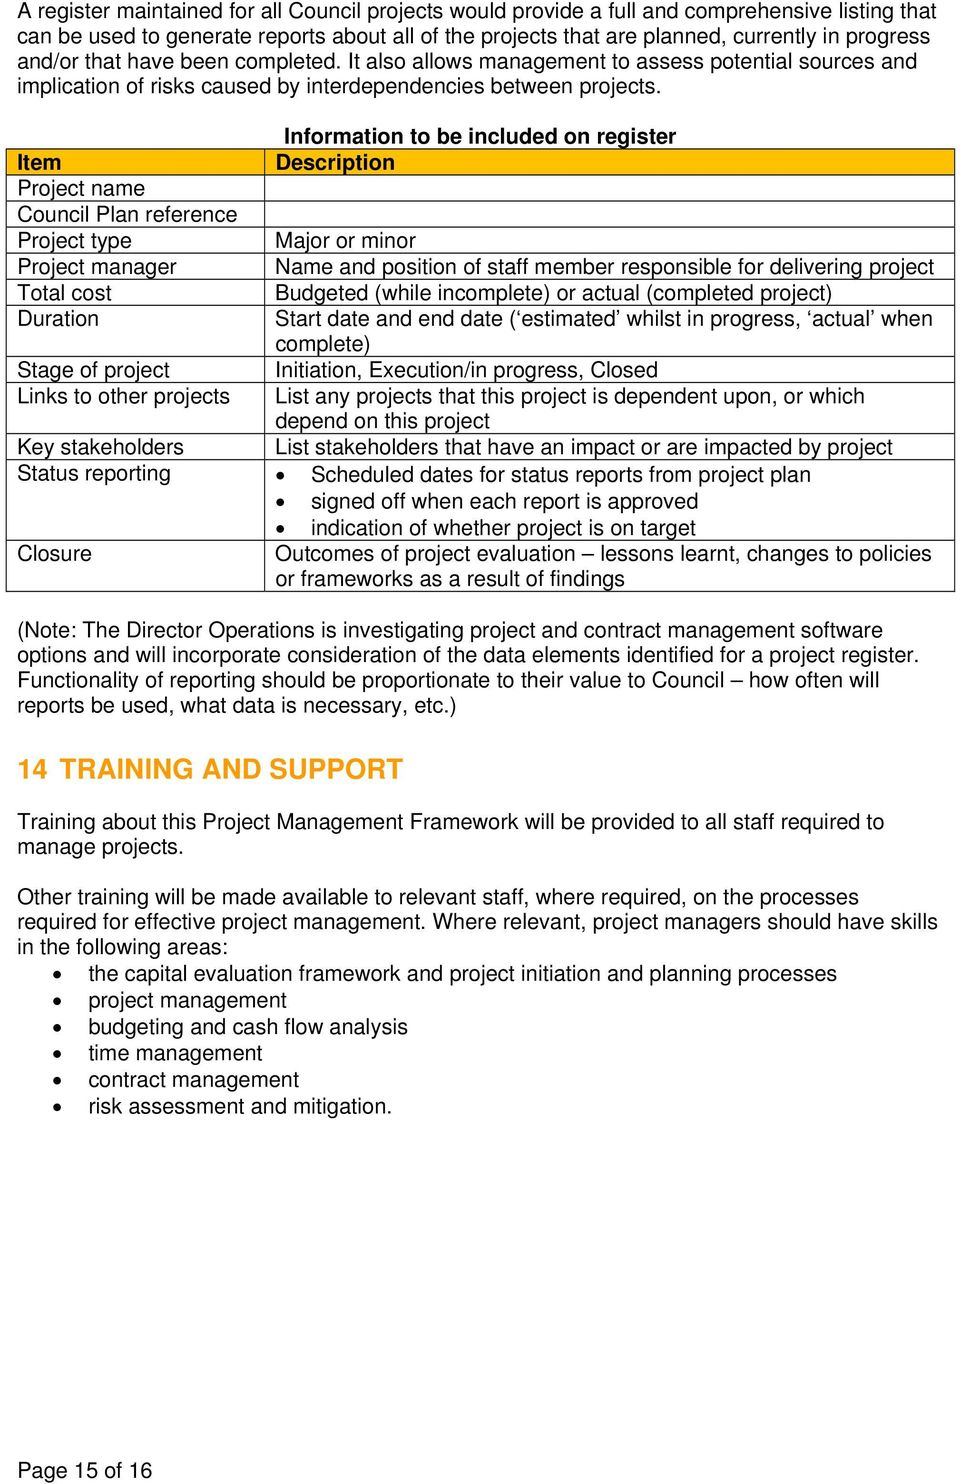 Information to be included on register Item Description Project name Council Plan reference Project type Major or minor Project manager Name and position of staff member responsible for delivering